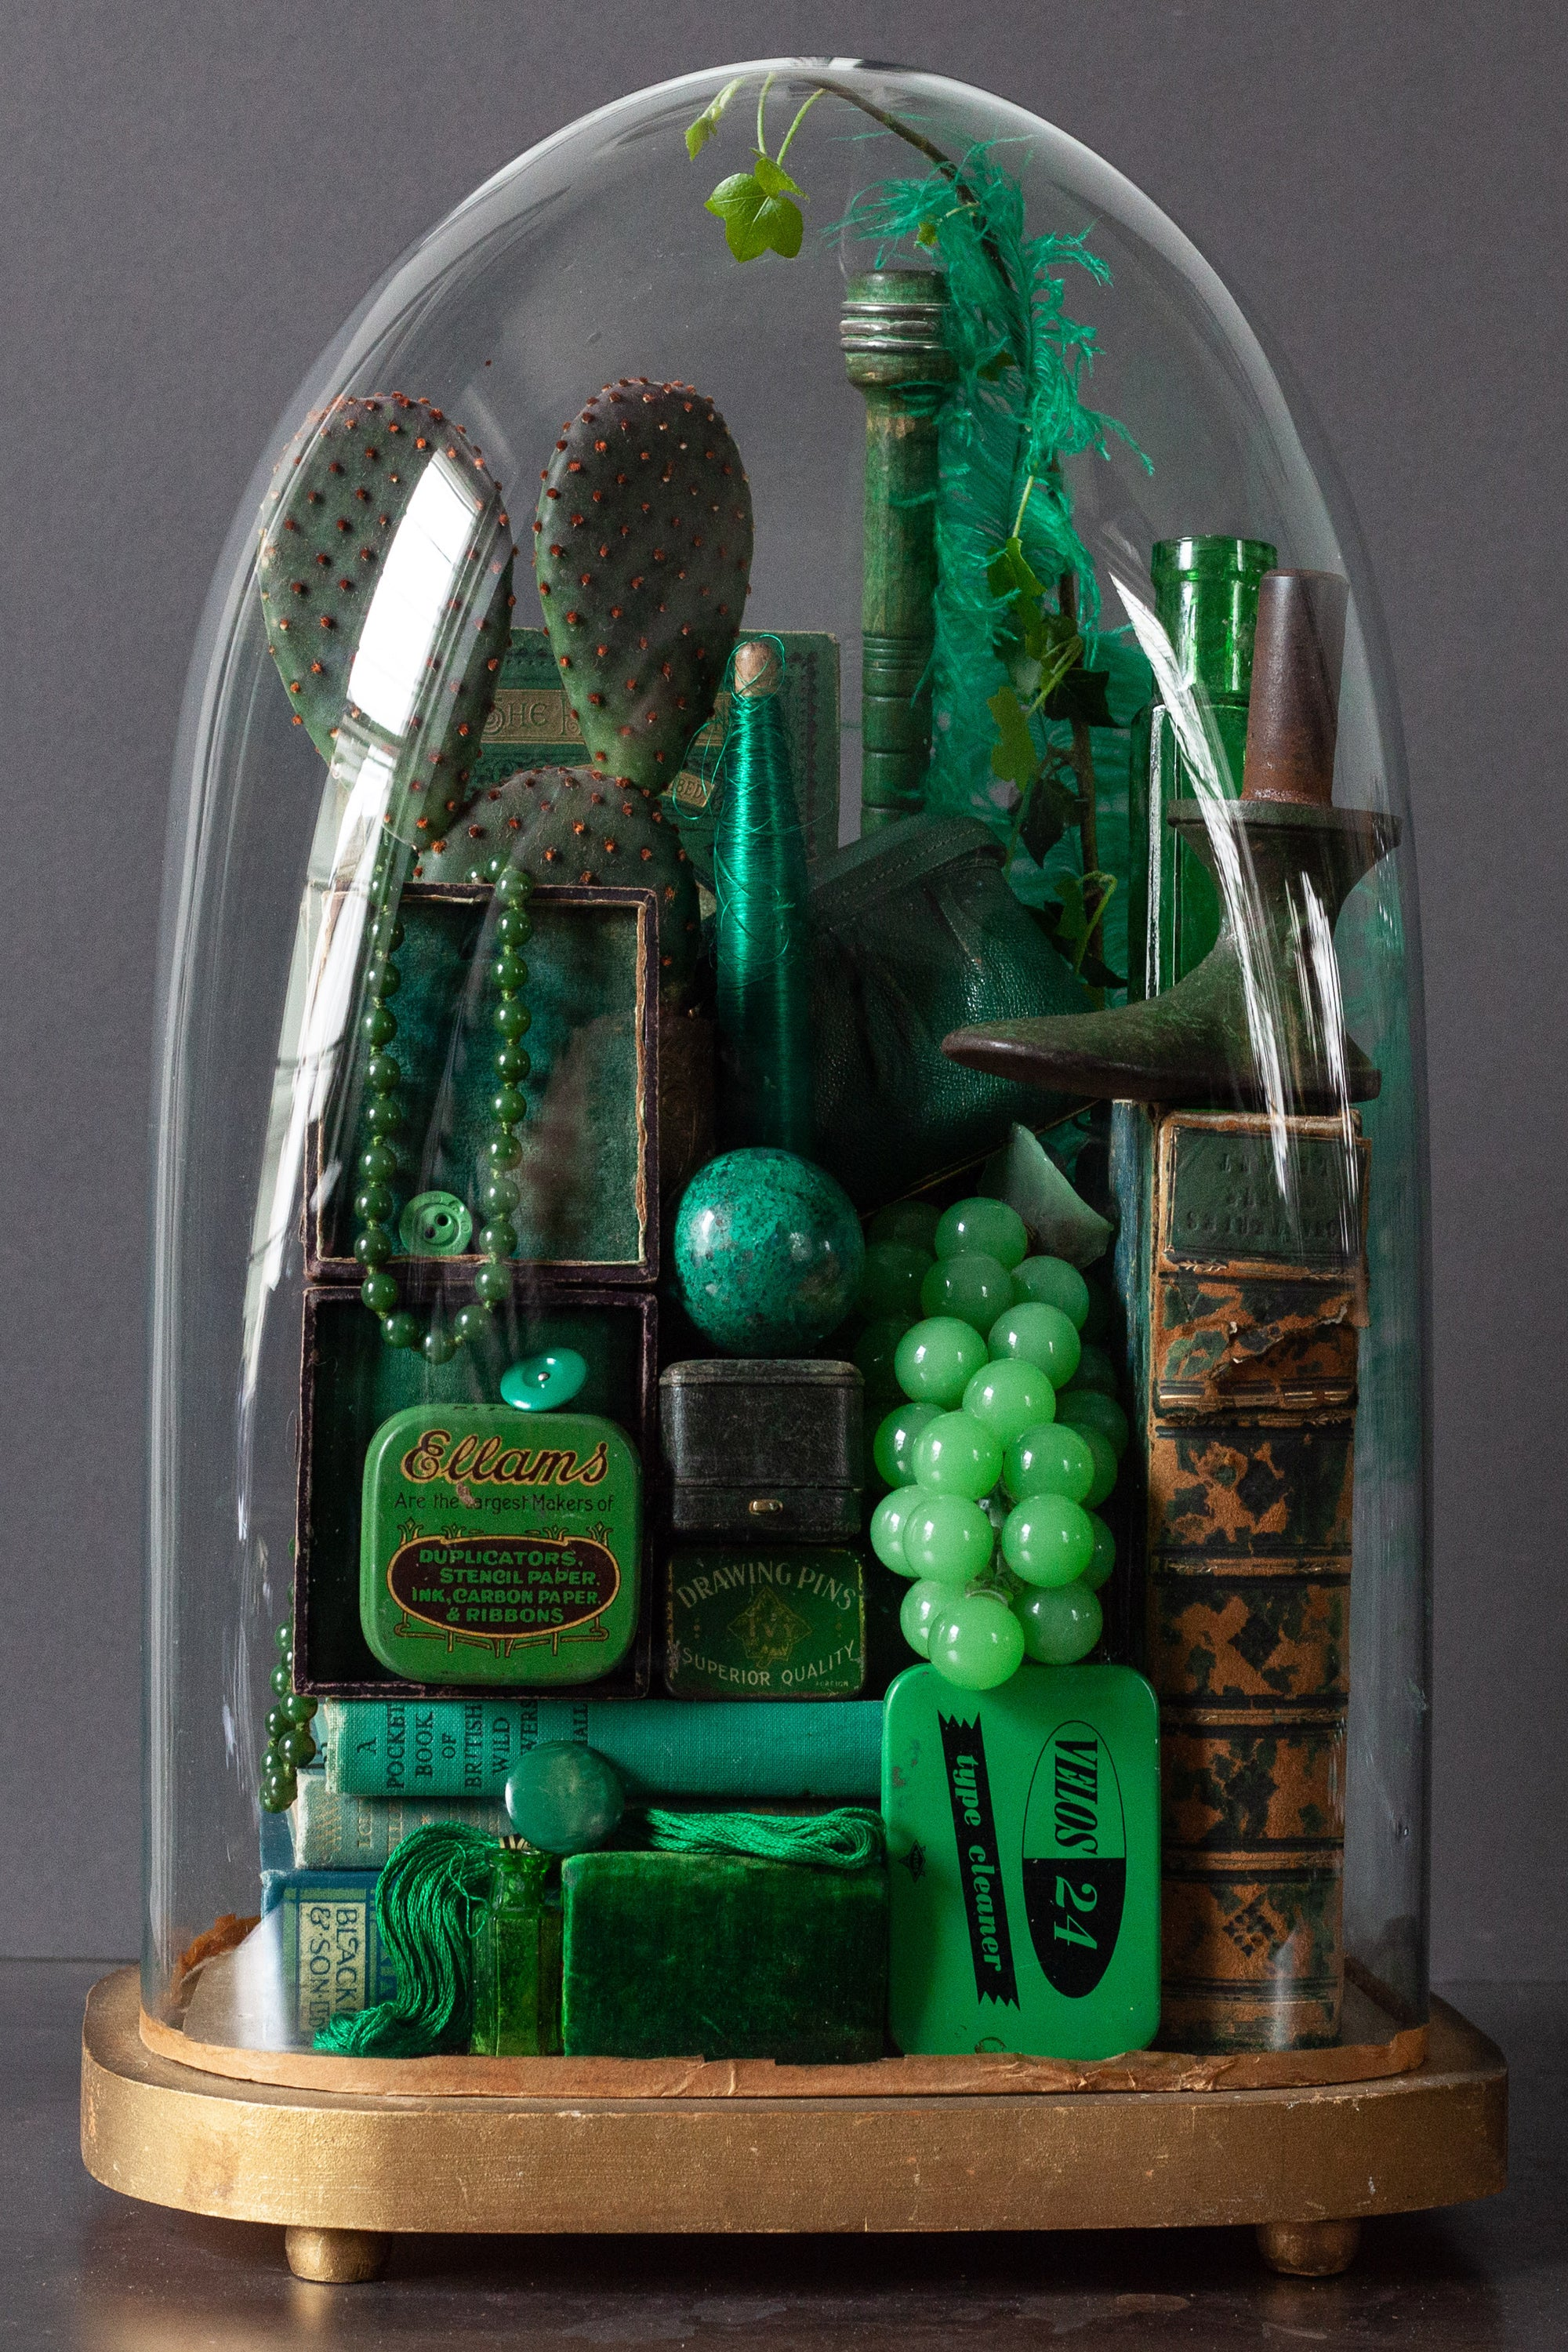 Collection of green vintage curiosities in glass dome